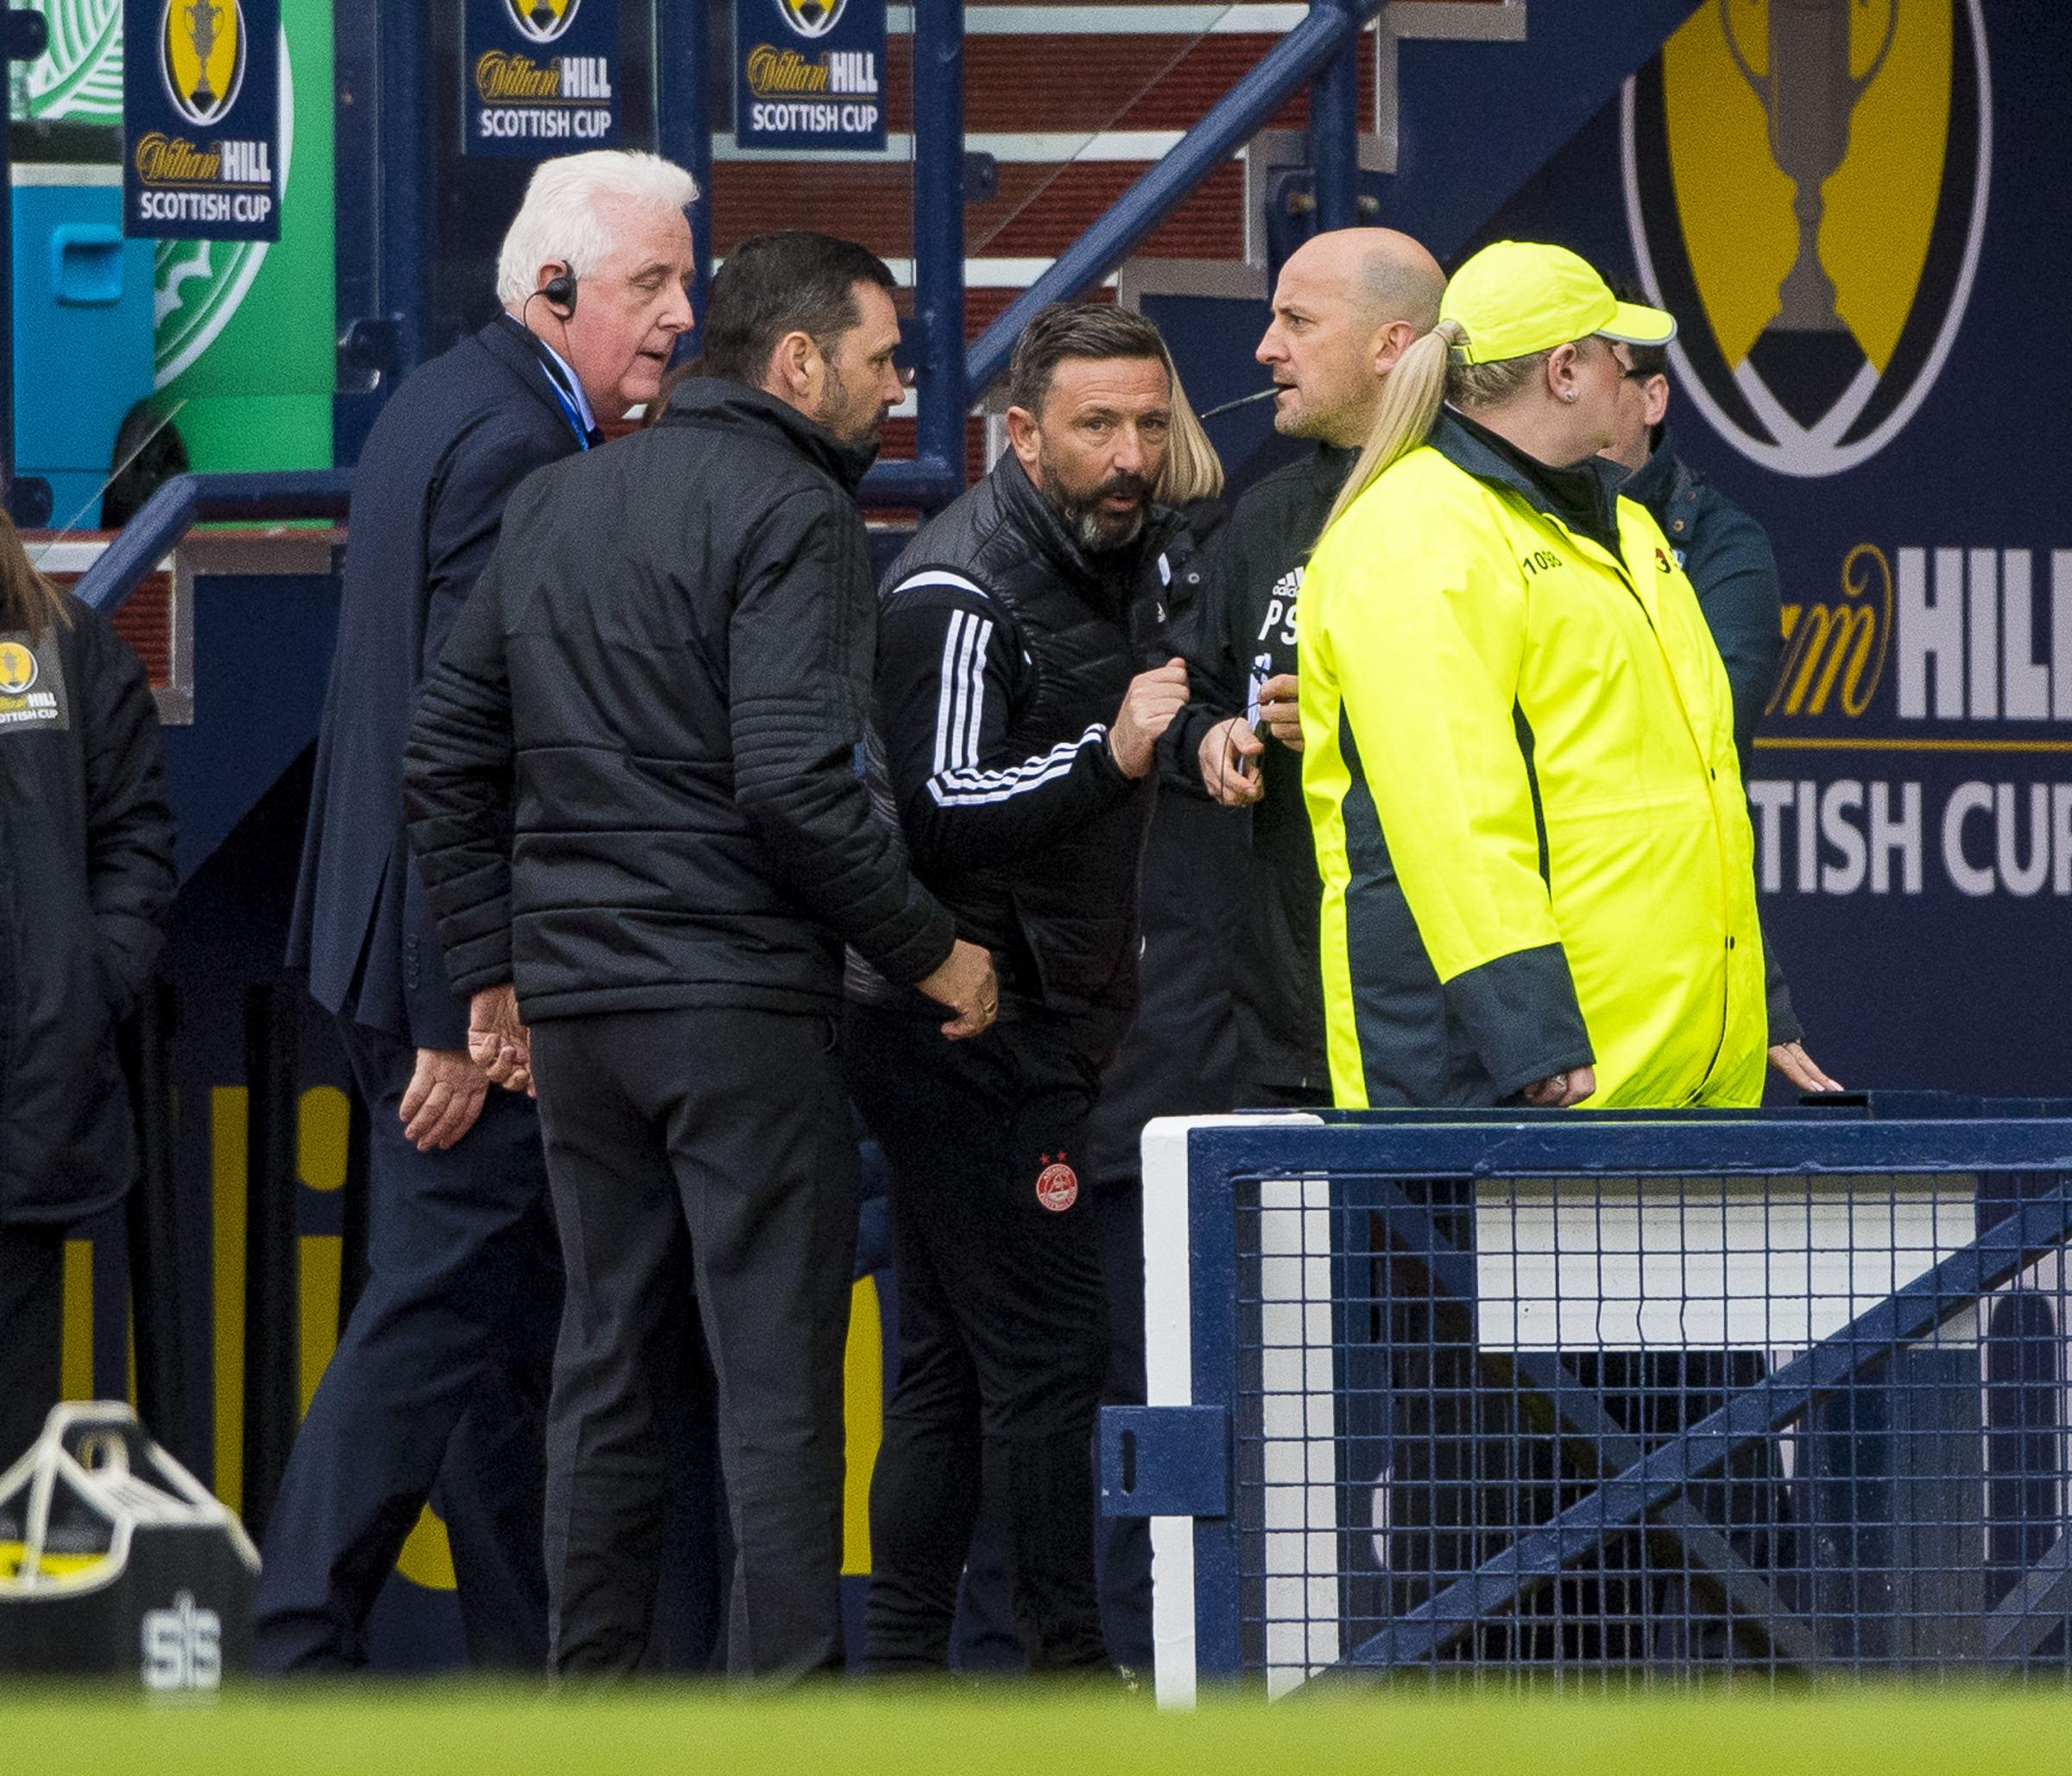 14/04/19 WILLIAM HILL SCOTTISH CUP SEMI-FINAL ABERDEEN v CELTIC (0-3) HAMPDEN PARK - GLASGOW Aberdeen manager Derek McInnes expresses his displeasure after being sent to the stands.